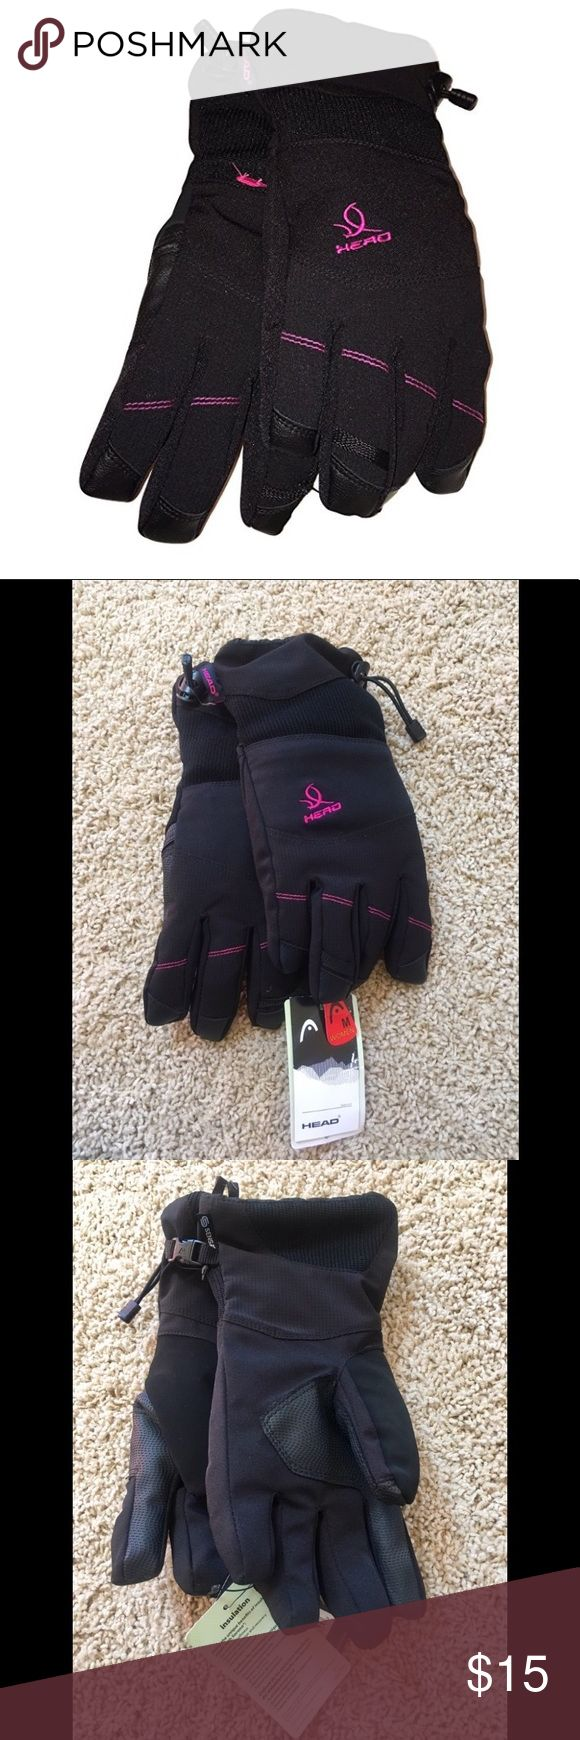 "Women's Ski Gloves by Head Brand new, with tags attached. From a smoke & pet free home. Description from website ""The dupont sorona insulation, outlast interlining, and waterproof/breathable insert retain warmth and keep moisture out. The mesh pocket provides a great place for hand warmers, keys or other small items and the hook and loop attachment system ensures you never lose your gloves"". Head Accessories Gloves & Mittens"